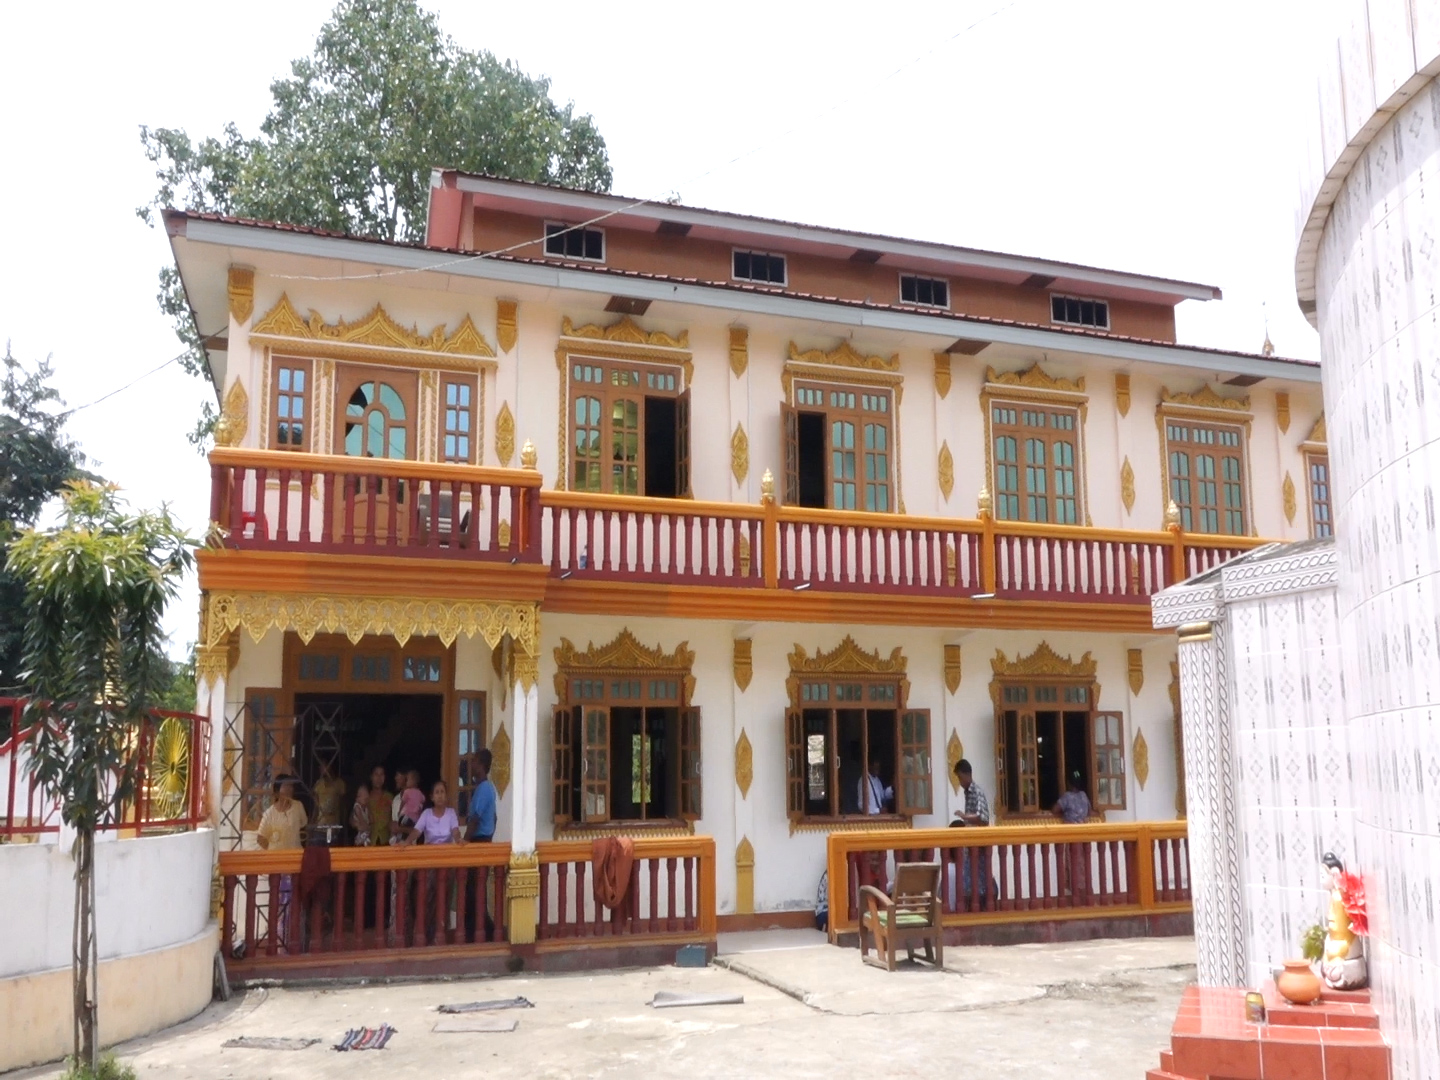 Rangoon abbot evicted from Dala monastery over ownership dispute